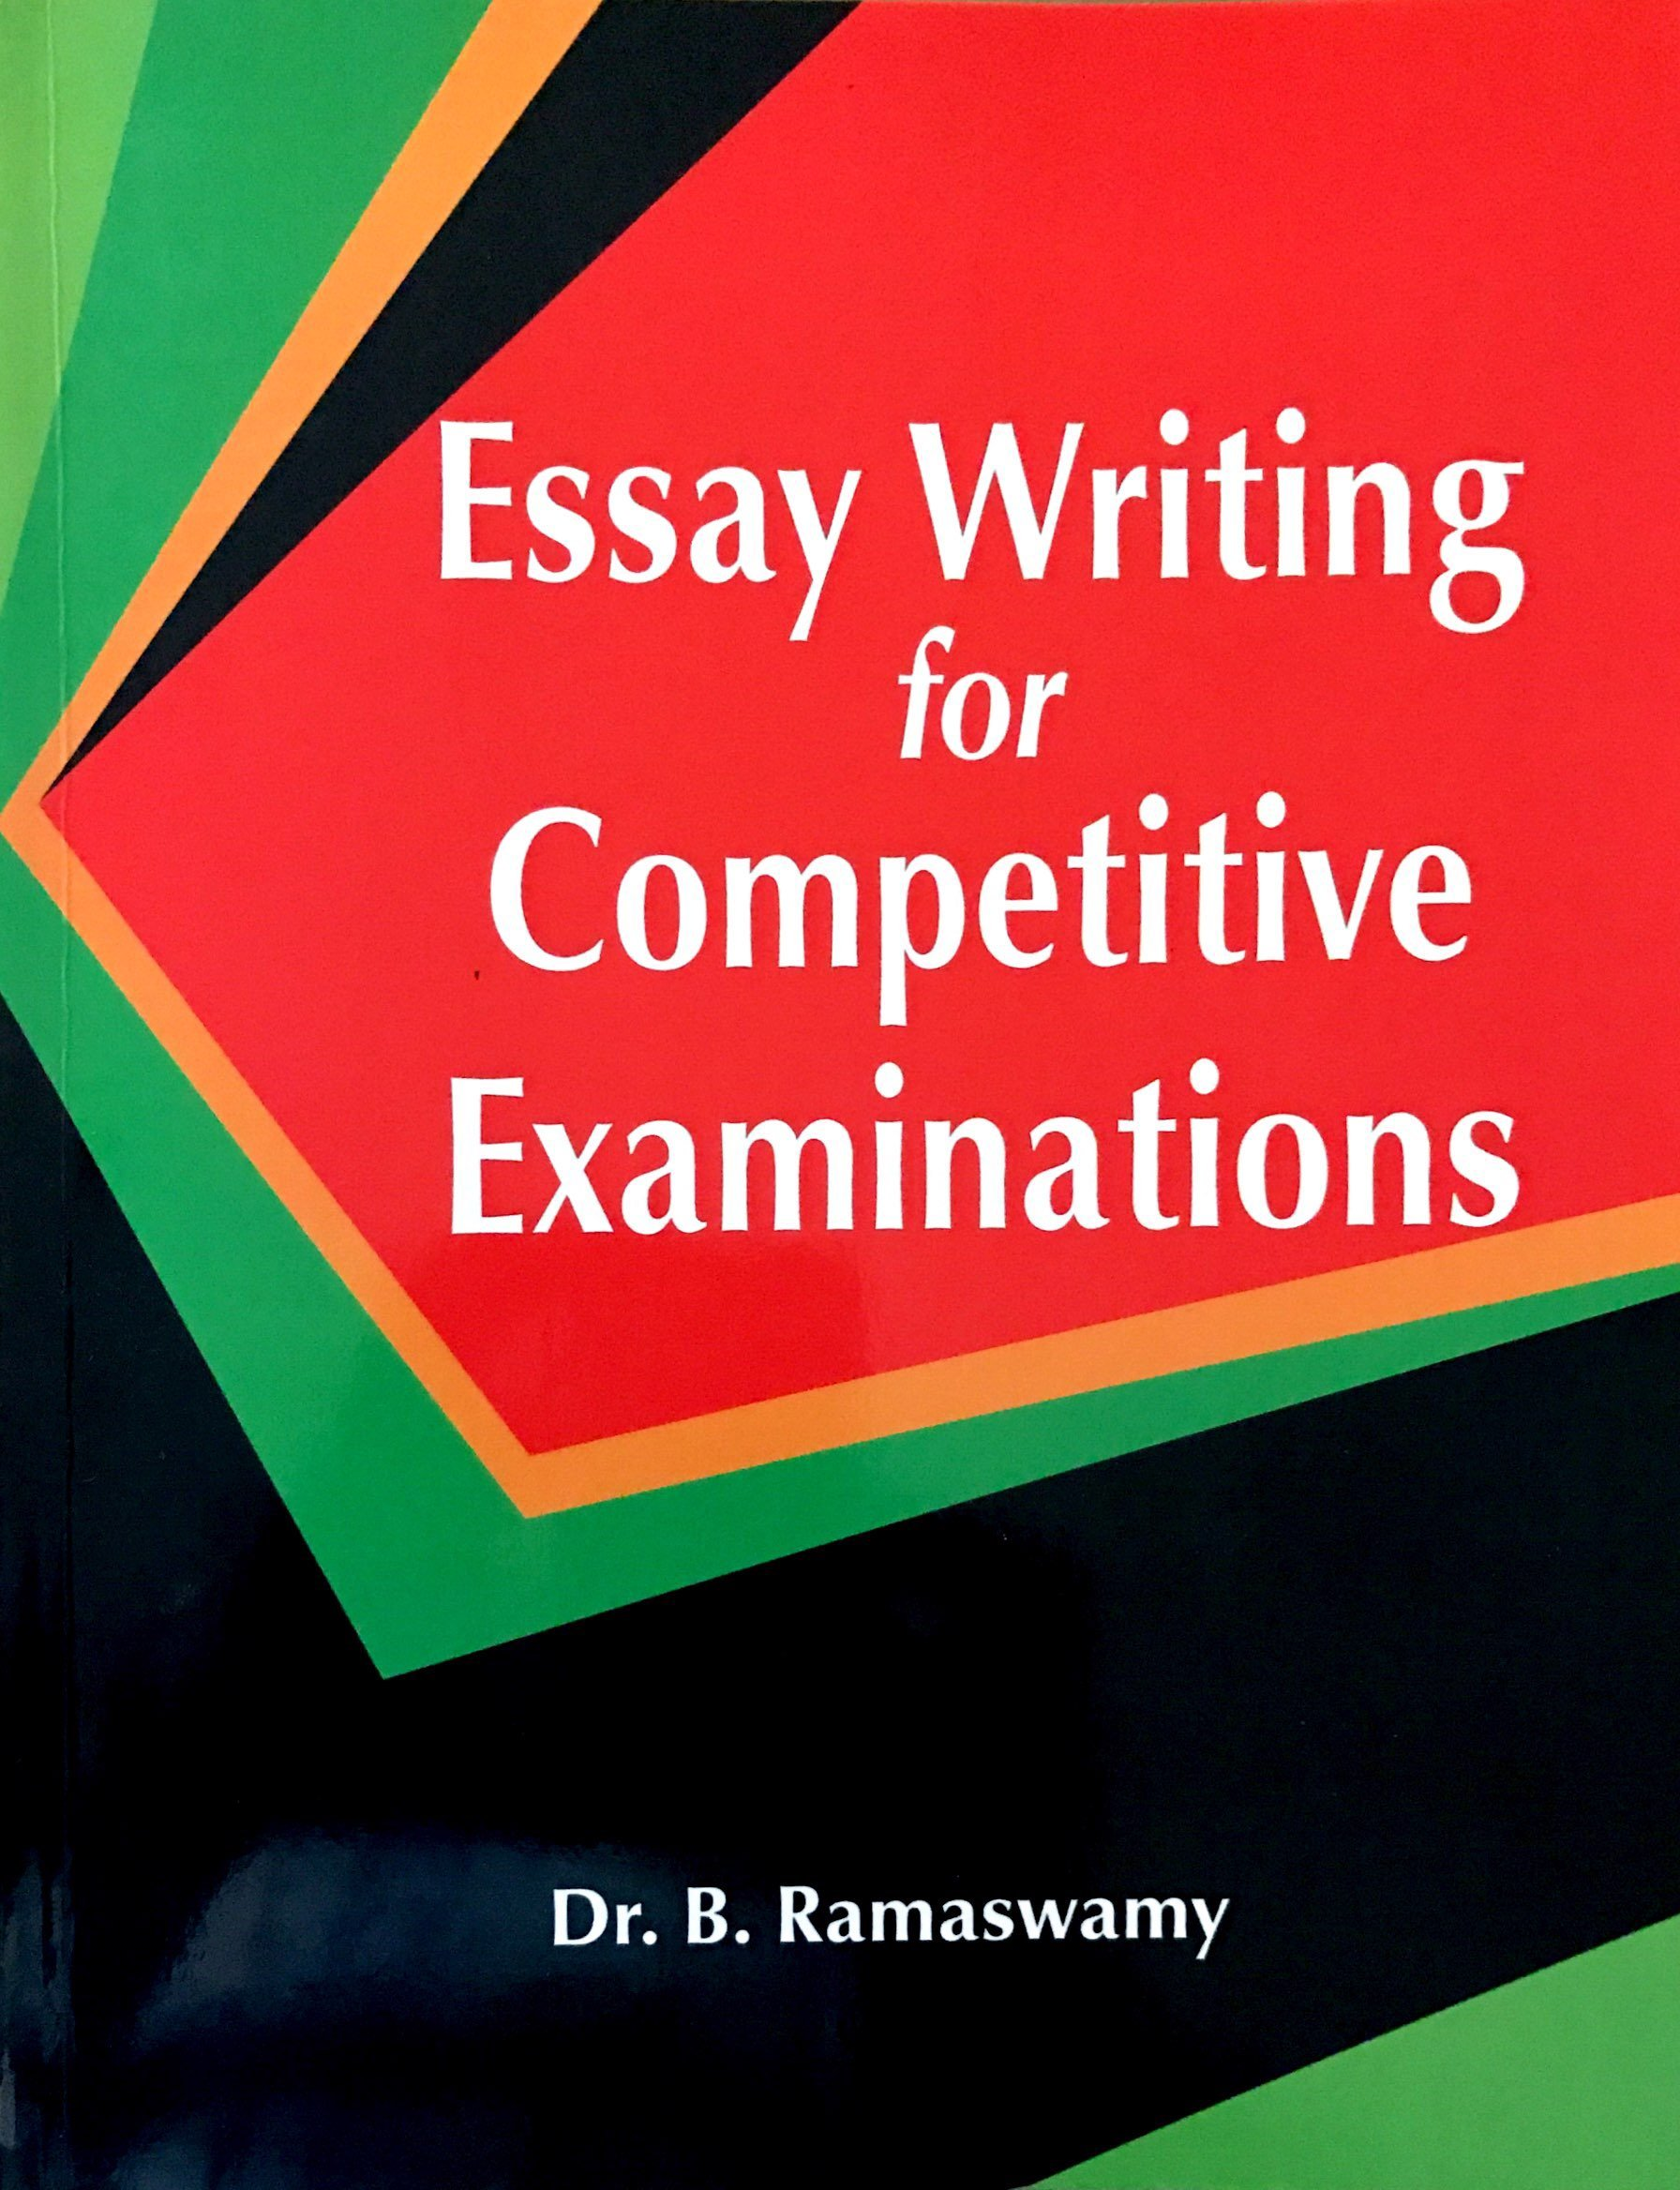 essays for competitive exams in india Telangana allows writing of competitive exams in arrangements to allow minority students to write competitive examinations in their india on my gulf.